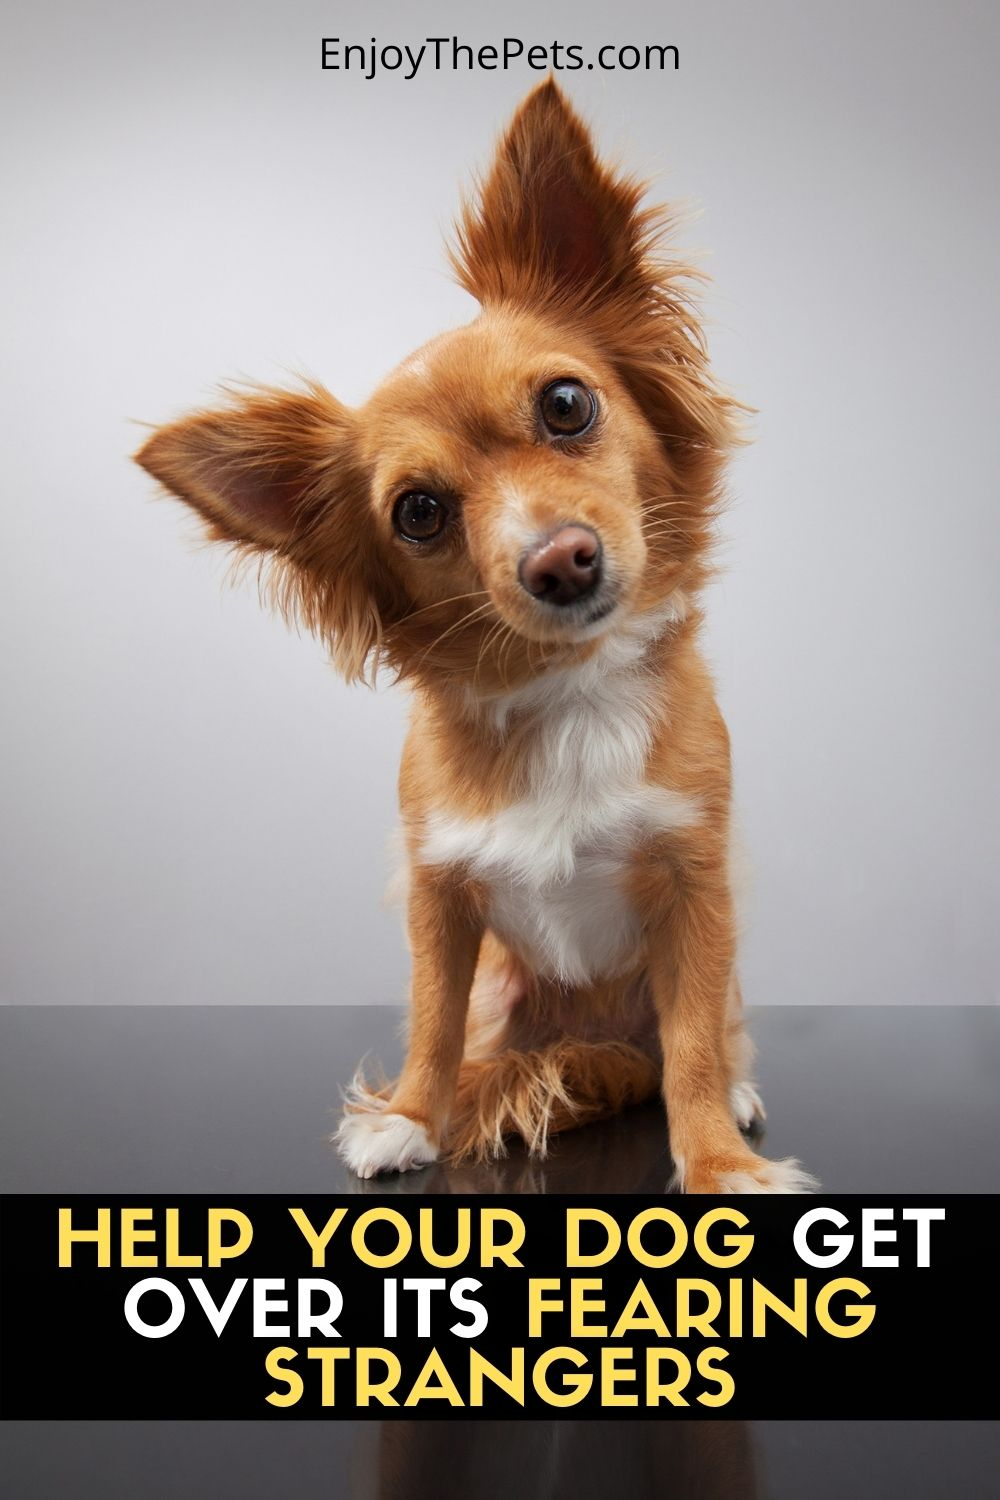 HELP YOUR DOG GET OVER ITS FEARING STRANGERS